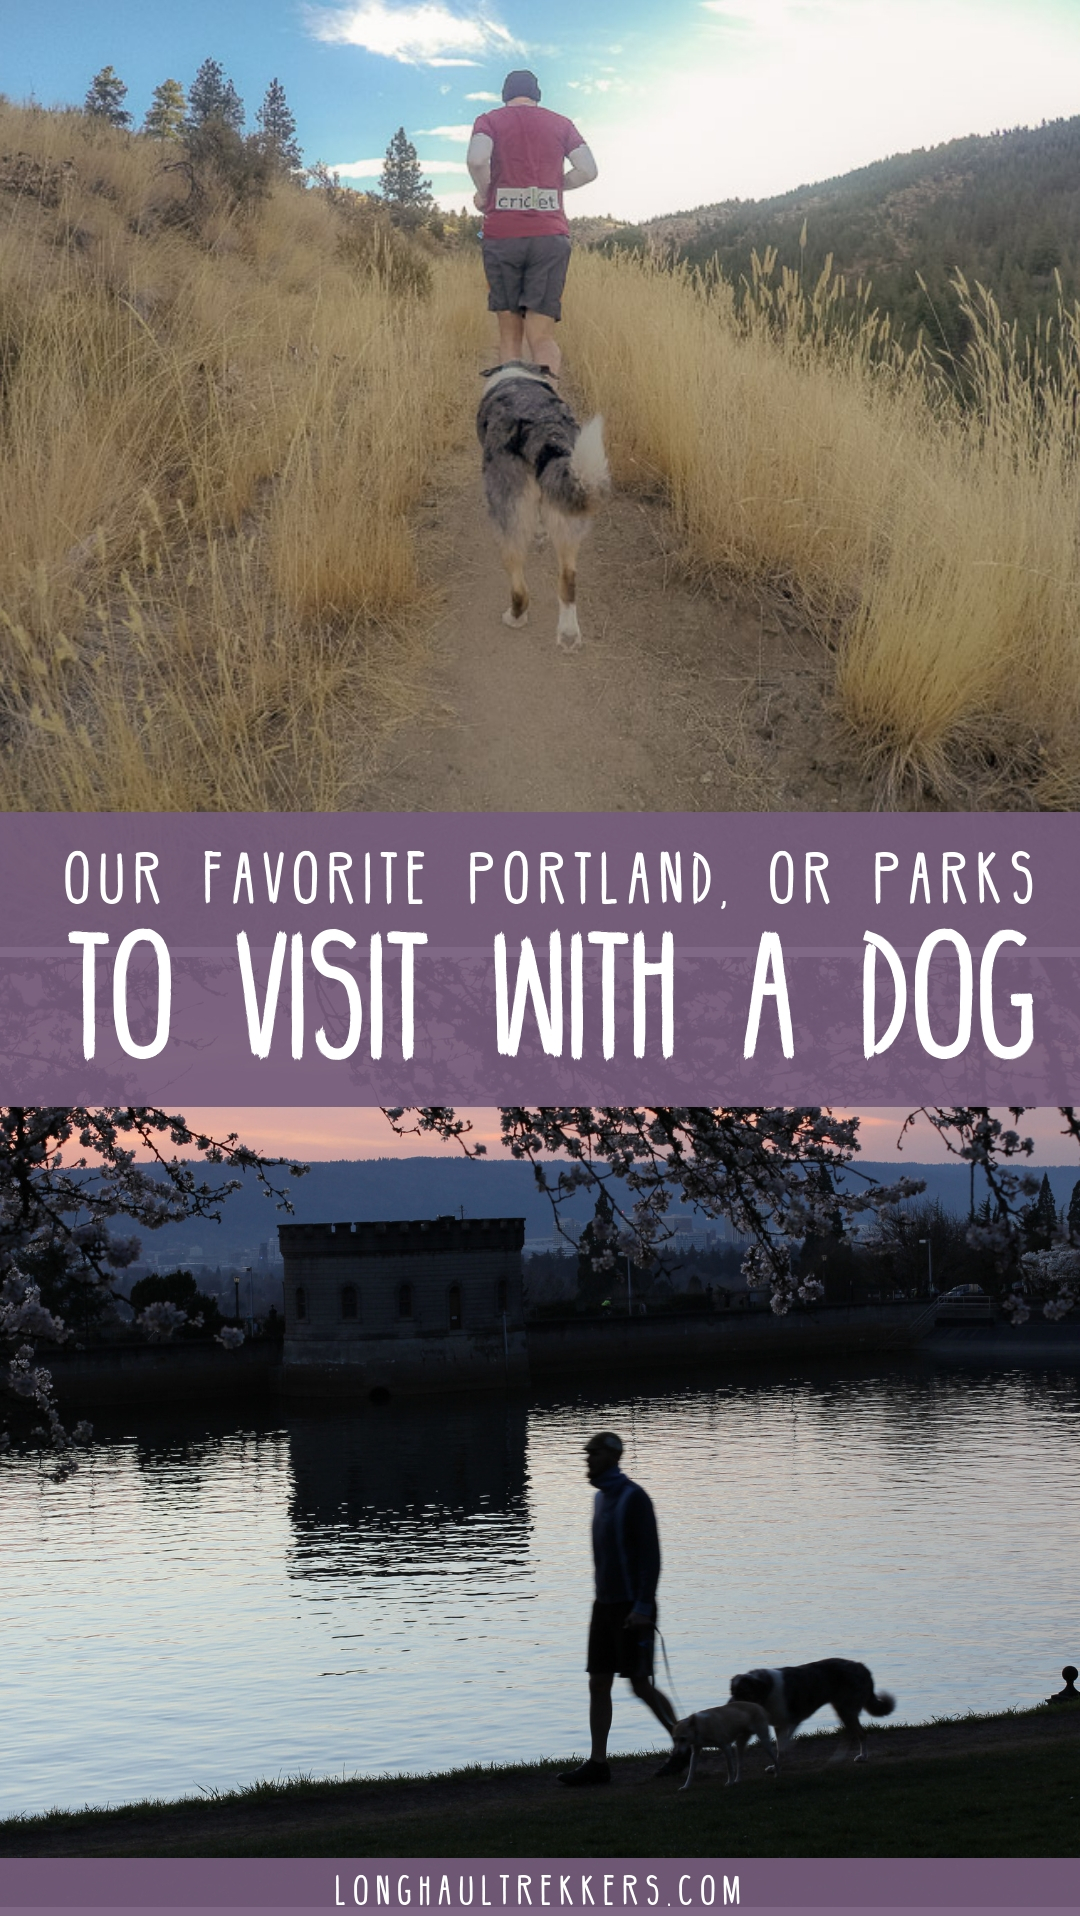 Portland has parks just about everywhere you look, so we picked a few of our favorites to visit with a dog.